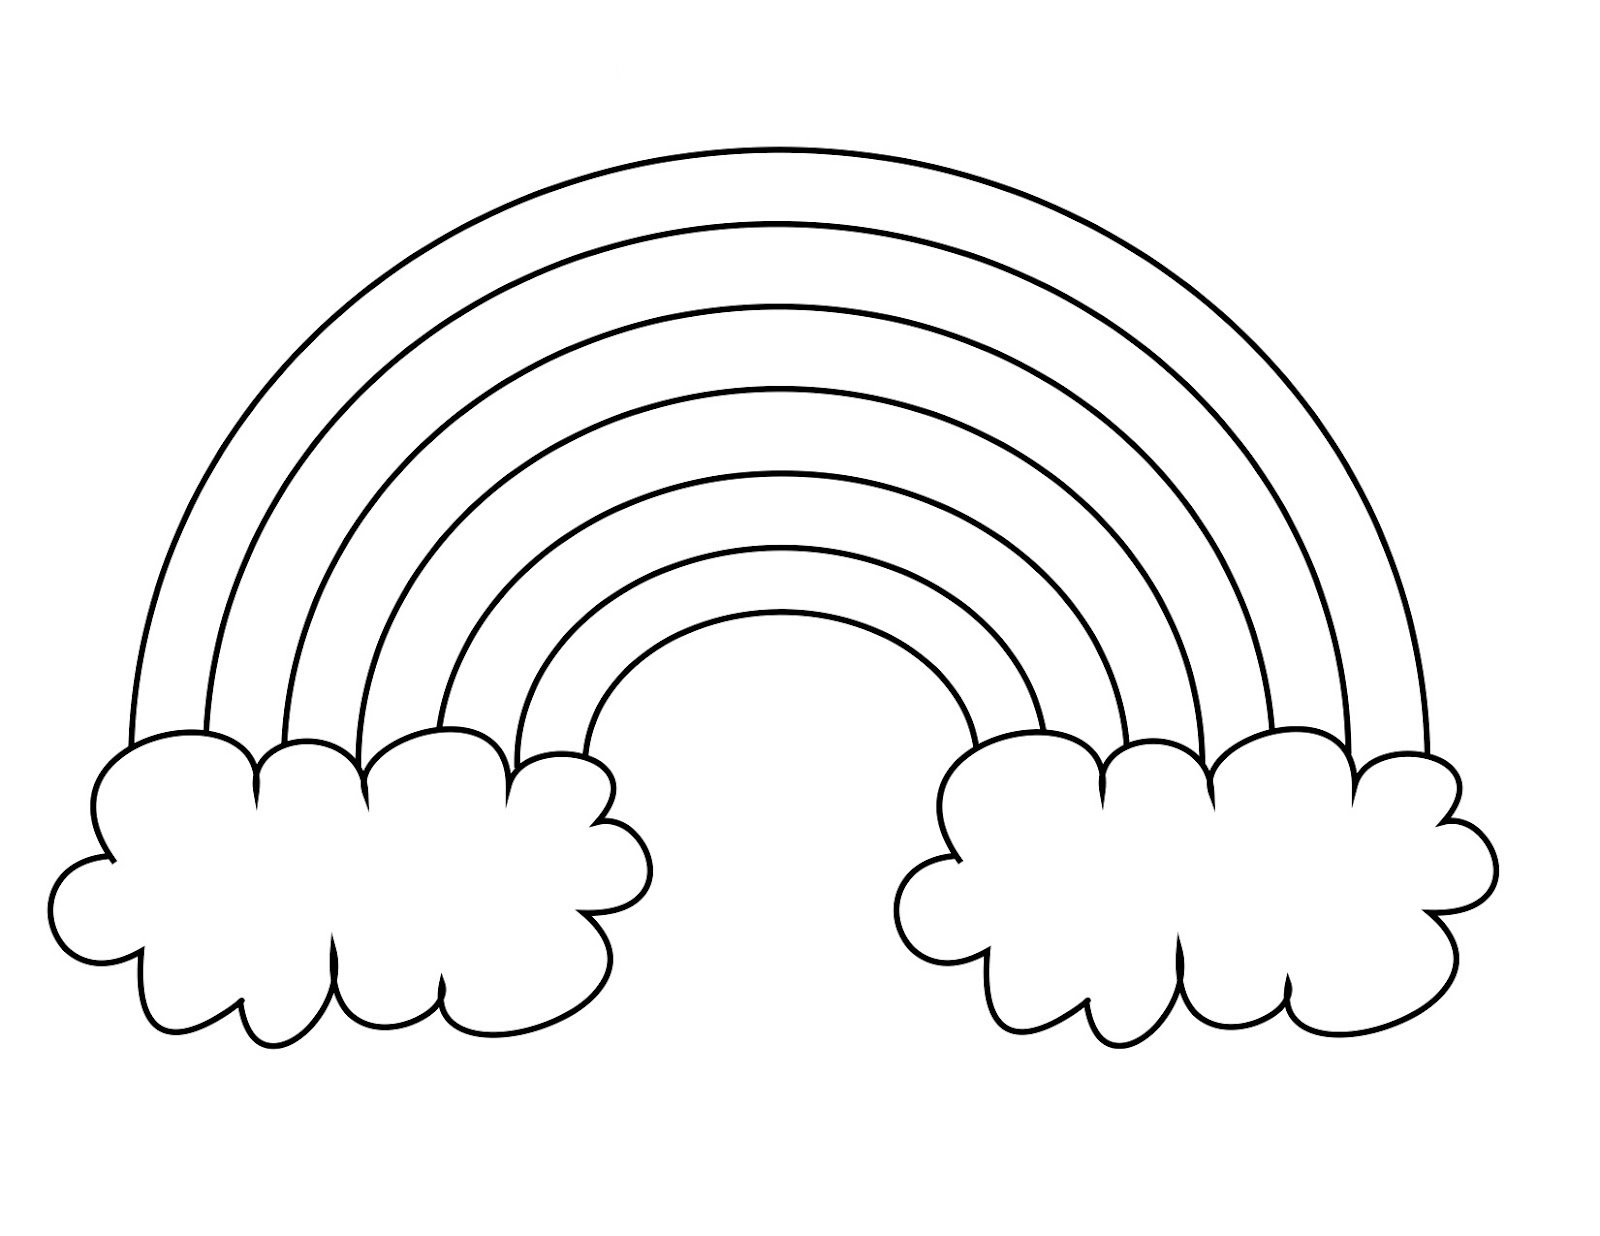 coloring pictures of rainbows get this free rainbow coloring pages to print t29m20 of coloring pictures rainbows